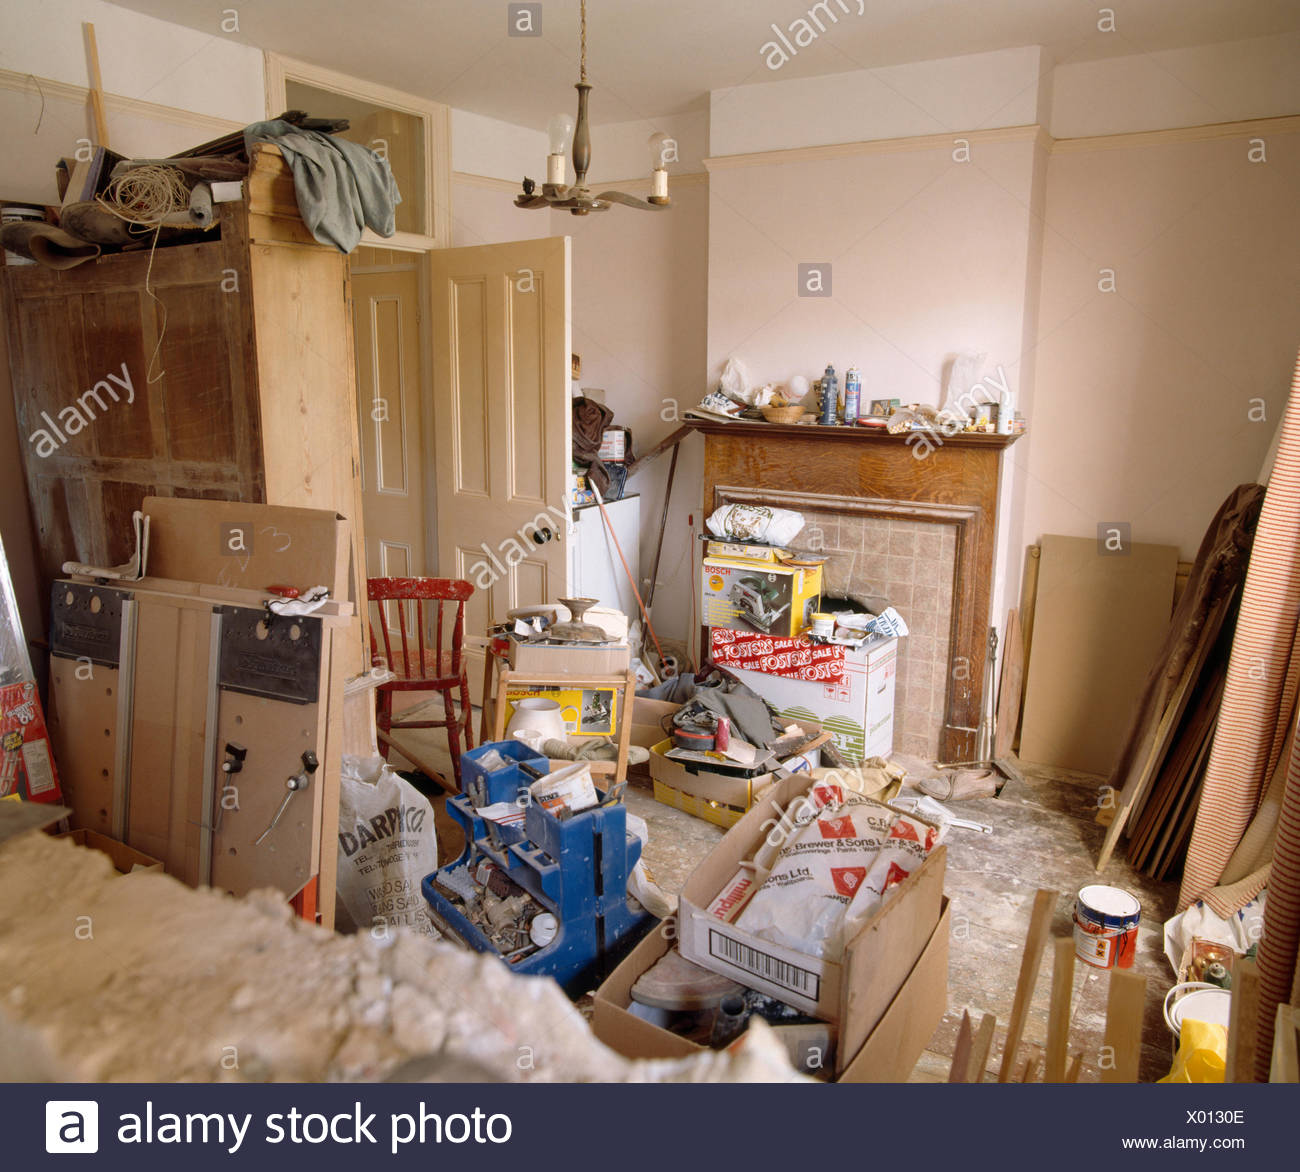 Messy Room Garbage: Cluttered Room Stock Photos & Cluttered Room Stock Images